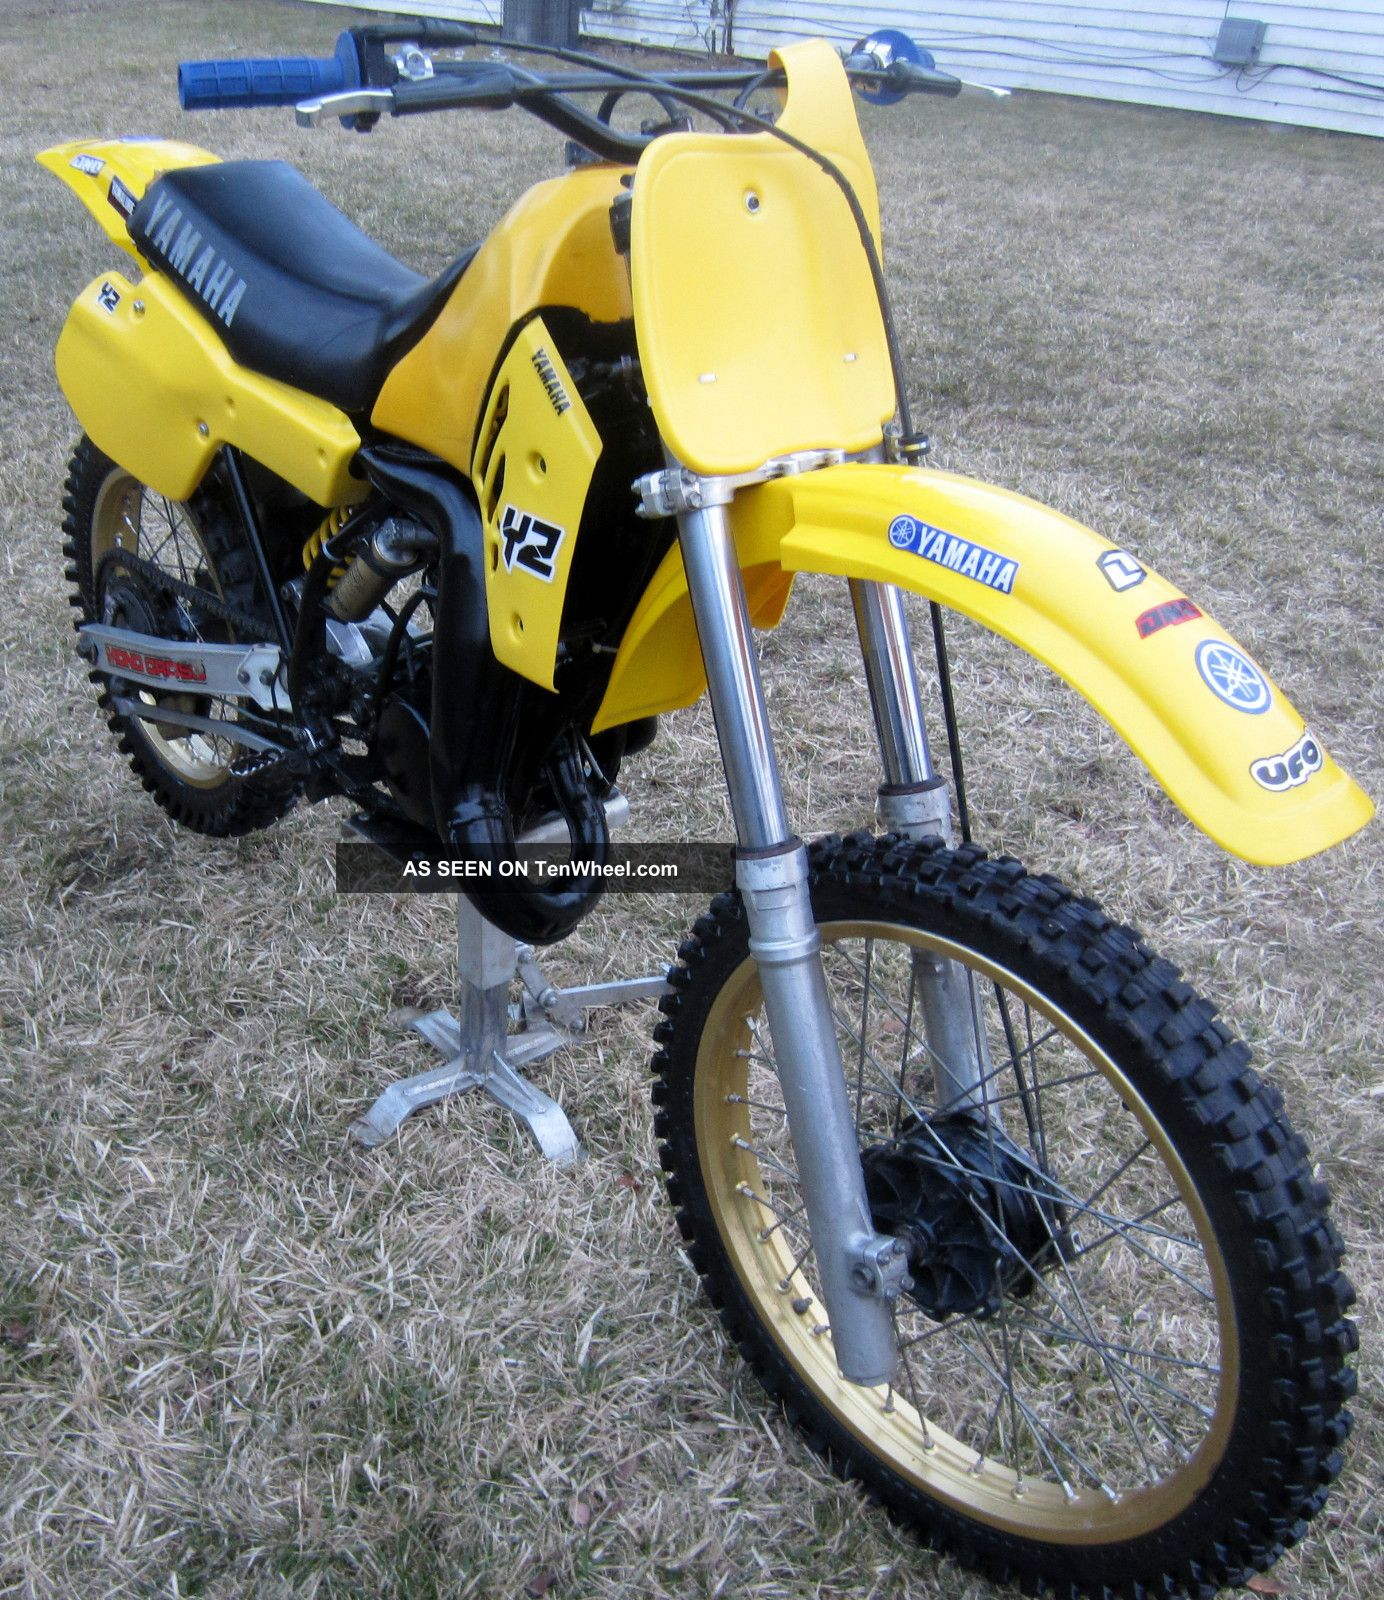 Rather motocross vintage yamaha confirm